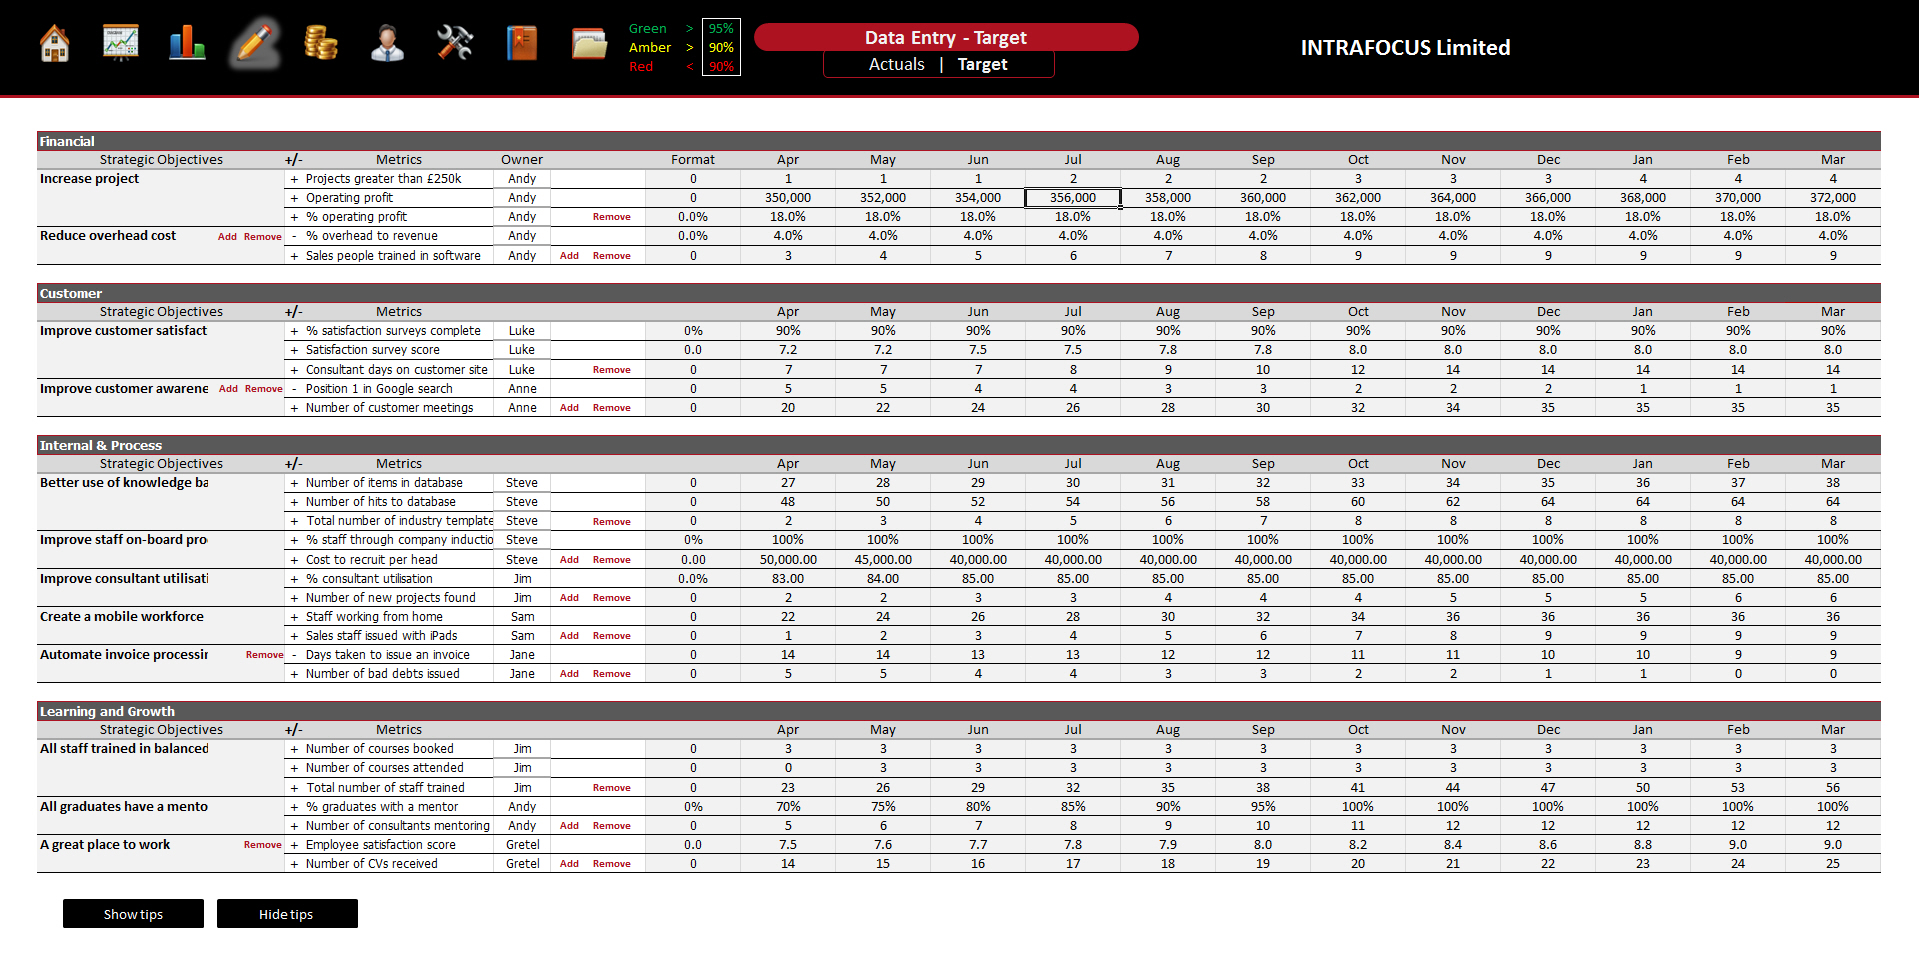 Balanced Scorecard Spreadsheet - Intrafocus